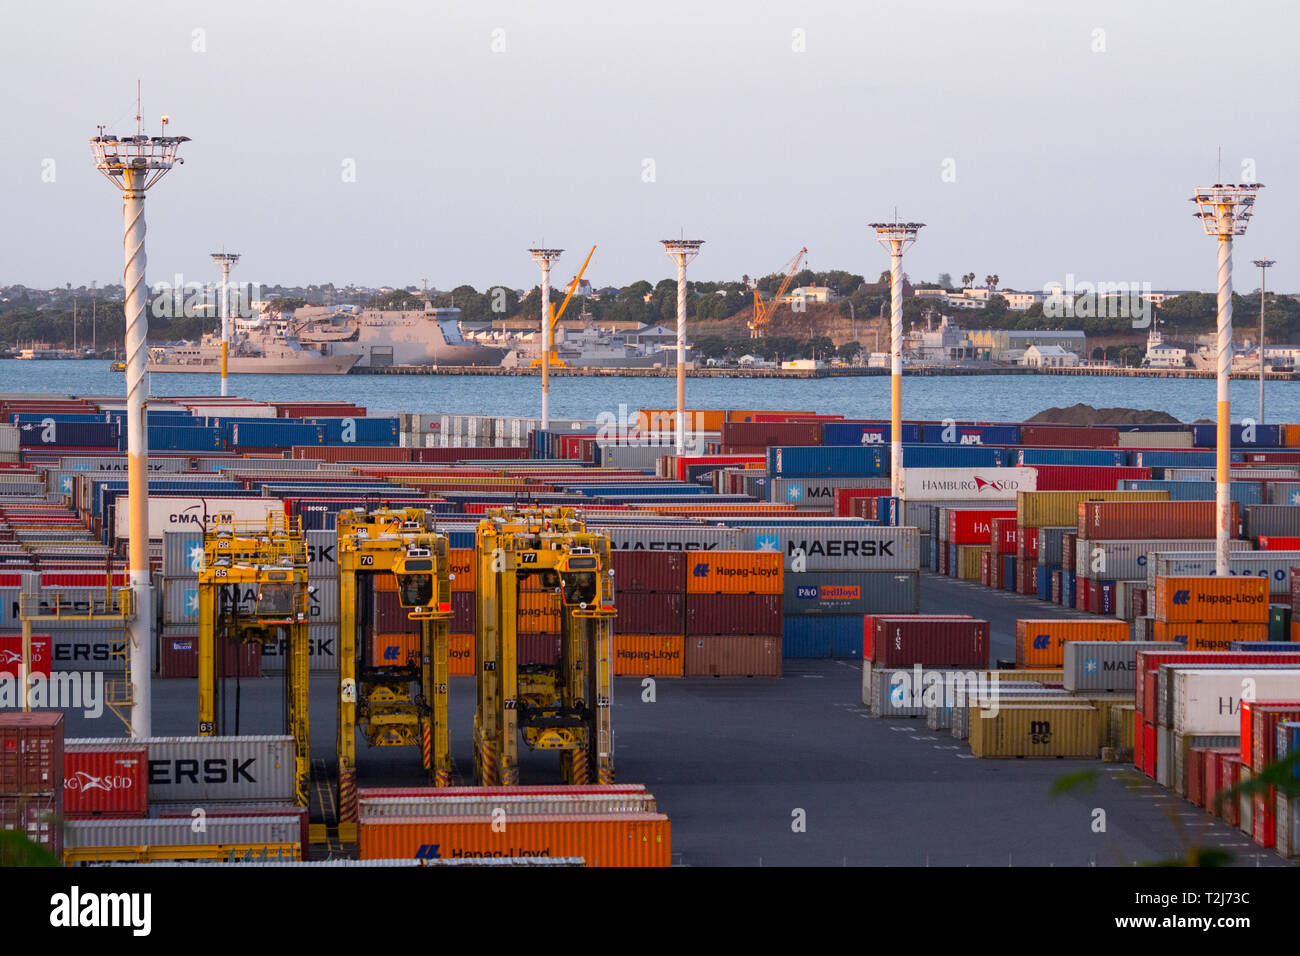 Auckland, New Zealand. Containers at the Ports of Auckland - Stock Image